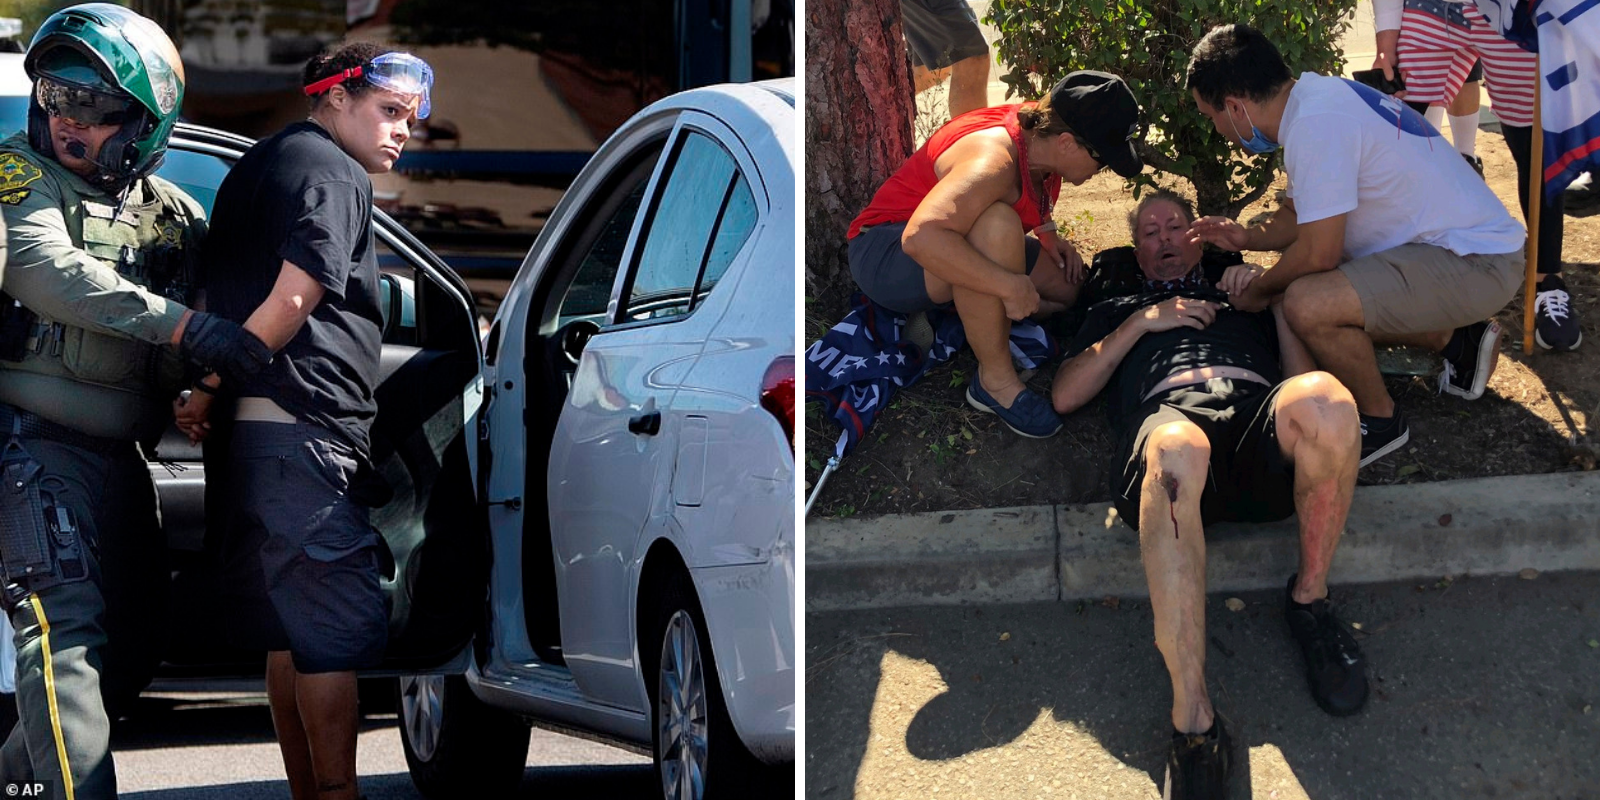 REVEALED: Woman who plowed her car into Trump supporters is a major BLM organizer